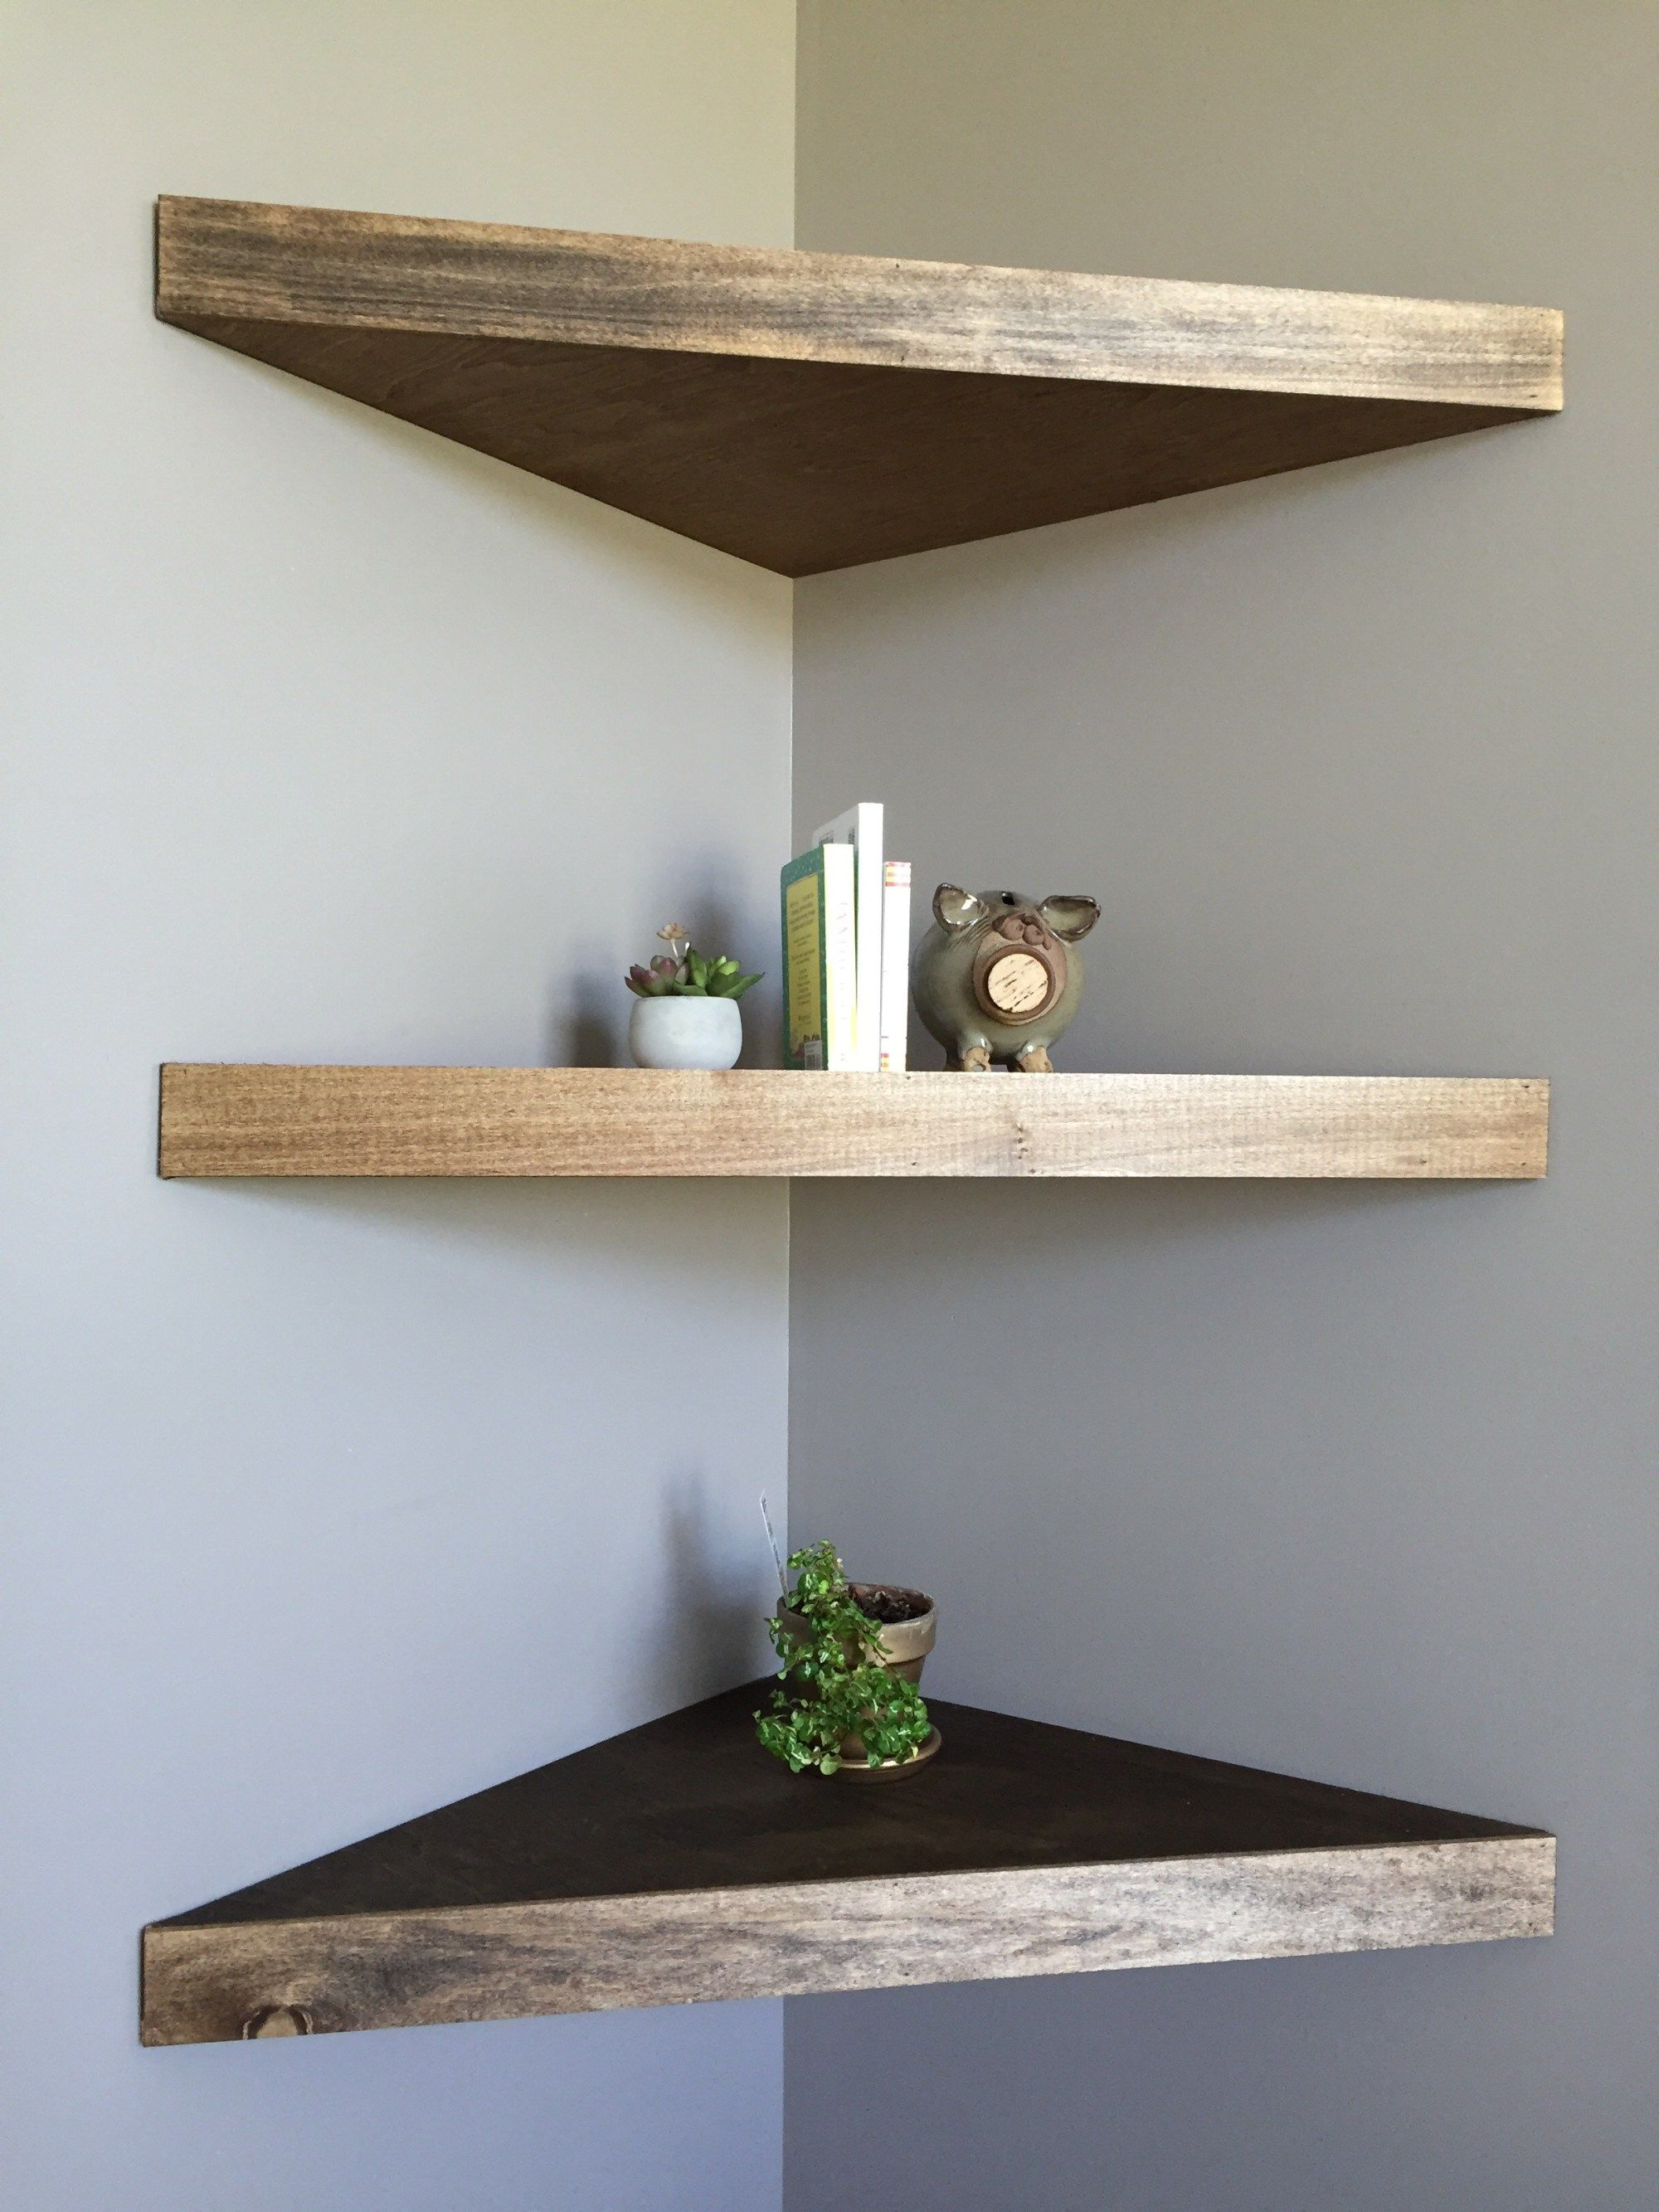 diy floating corner shelves for the home shelf sky box peel and stick bamboo flooring white cable rustic decor kitchen plans timber cube bookshelf entry table ideas small bathroom